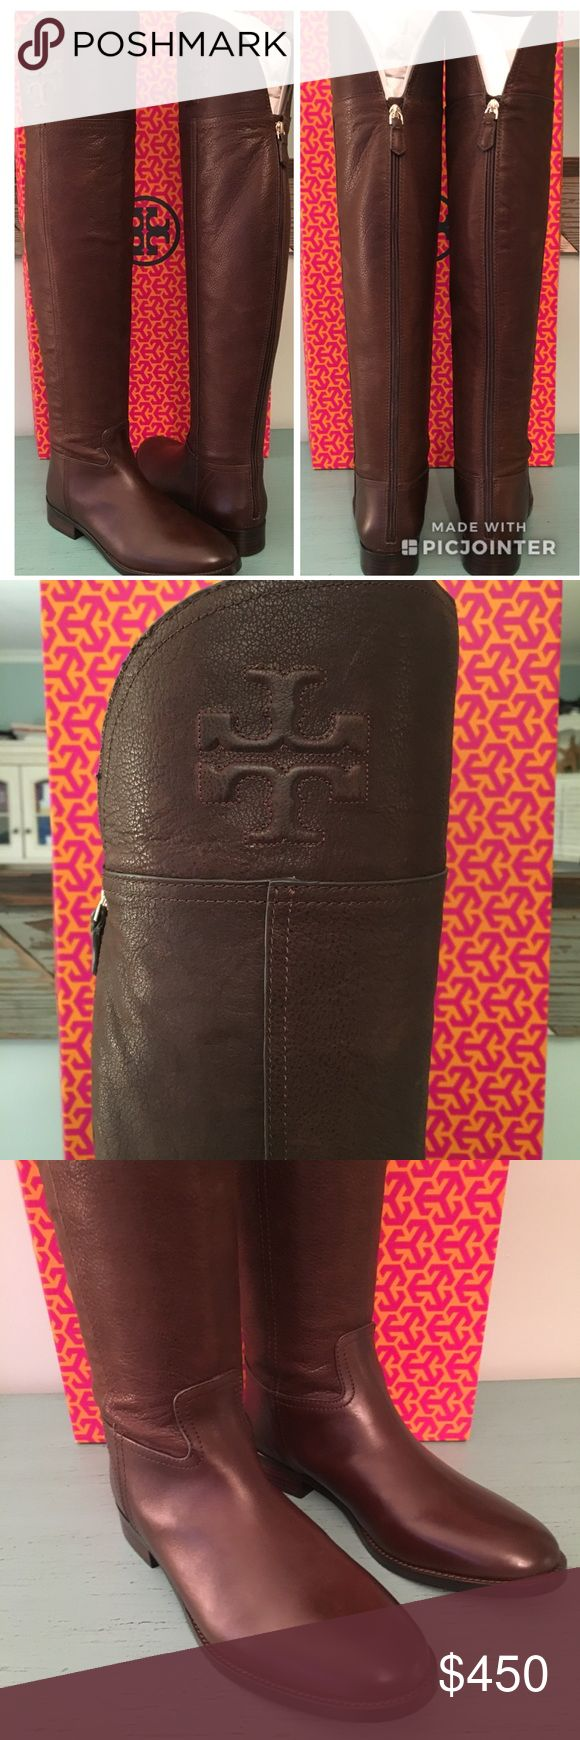 """Tory Burch Chocolate Simone Over the Knee Boots NWT! Gorgeous and so comfortable pebbled chocolate leather. Simone Over-the-Knee Boot in subtly distressed leather makes a solid choice. Detailed with a raised double-T logo and a back zip, it's a modern and versatile take equestrian-inspired style. Looks great with: The short and feminine above-the-knee skirts and dresses Or skinny denim, super-slim pants and leggings Heel height: 1.4"""" (3.5 cm) Leather upper. Zipper closure. Leather lining and…"""